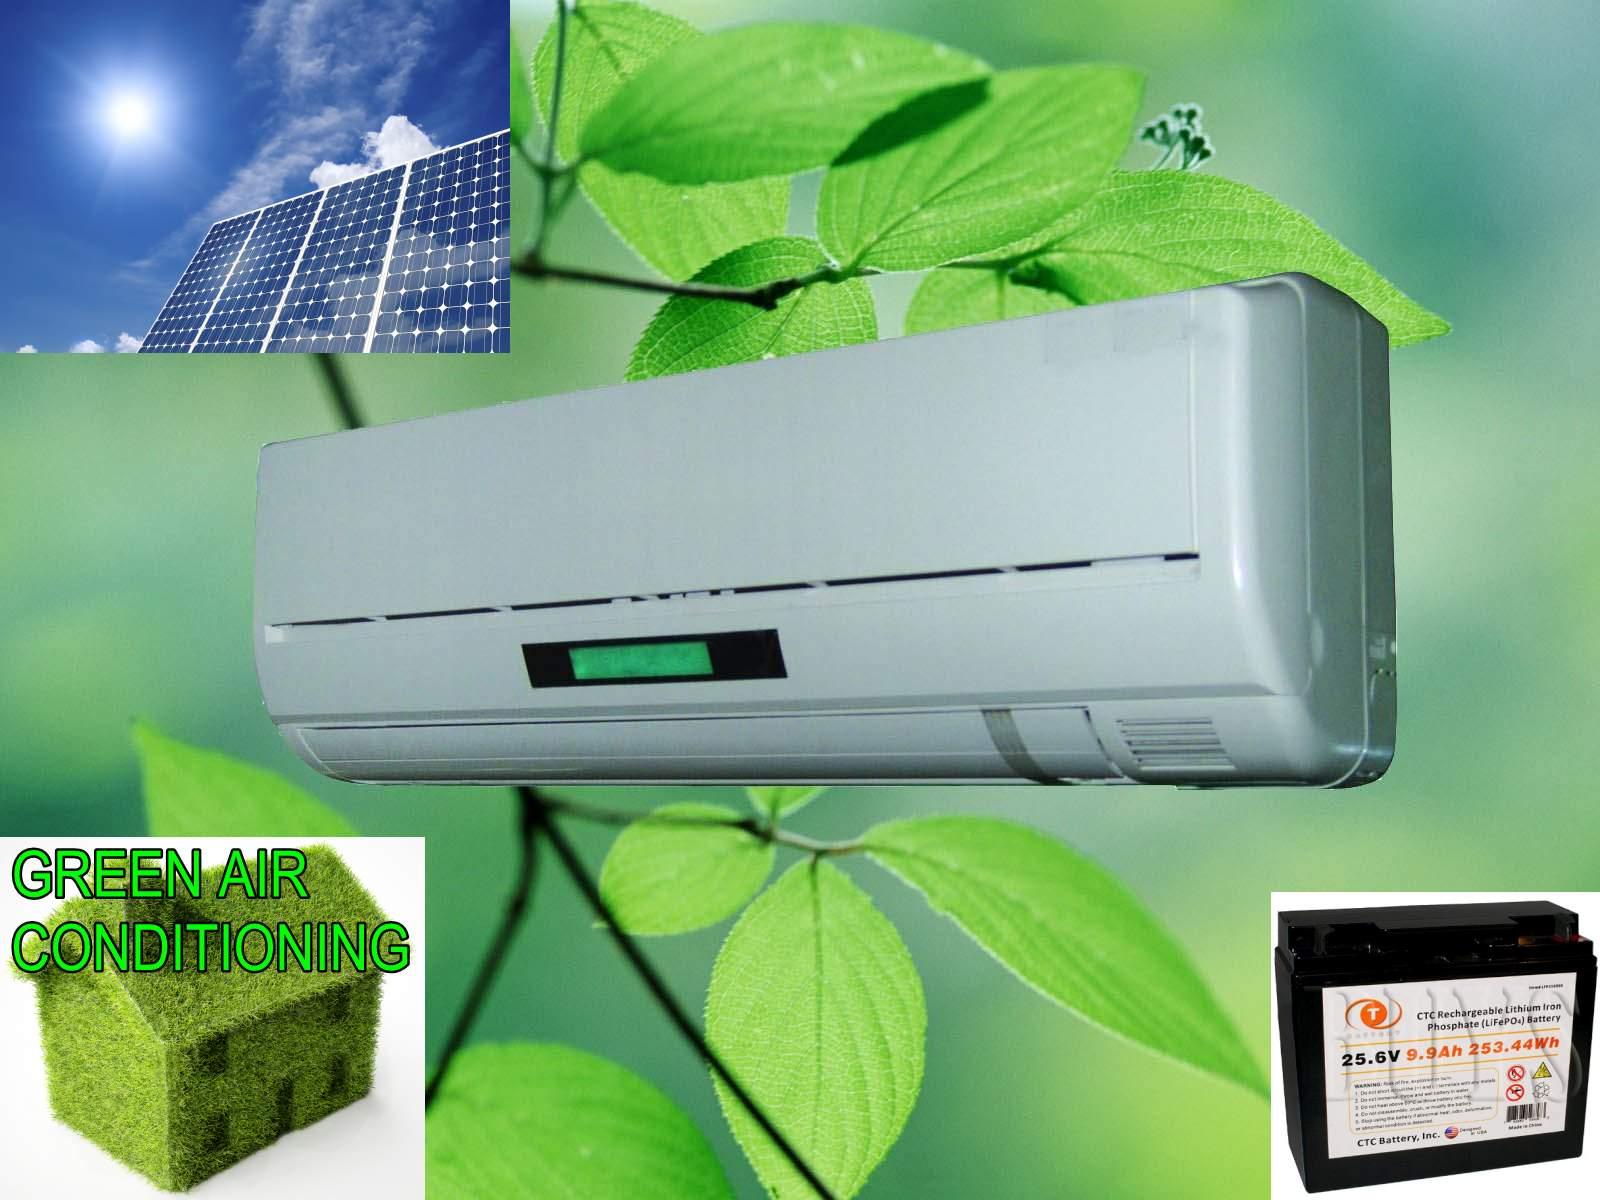 solar powered air conditioning unit 6 steps (with pictures)  solar powered air conditioning unit